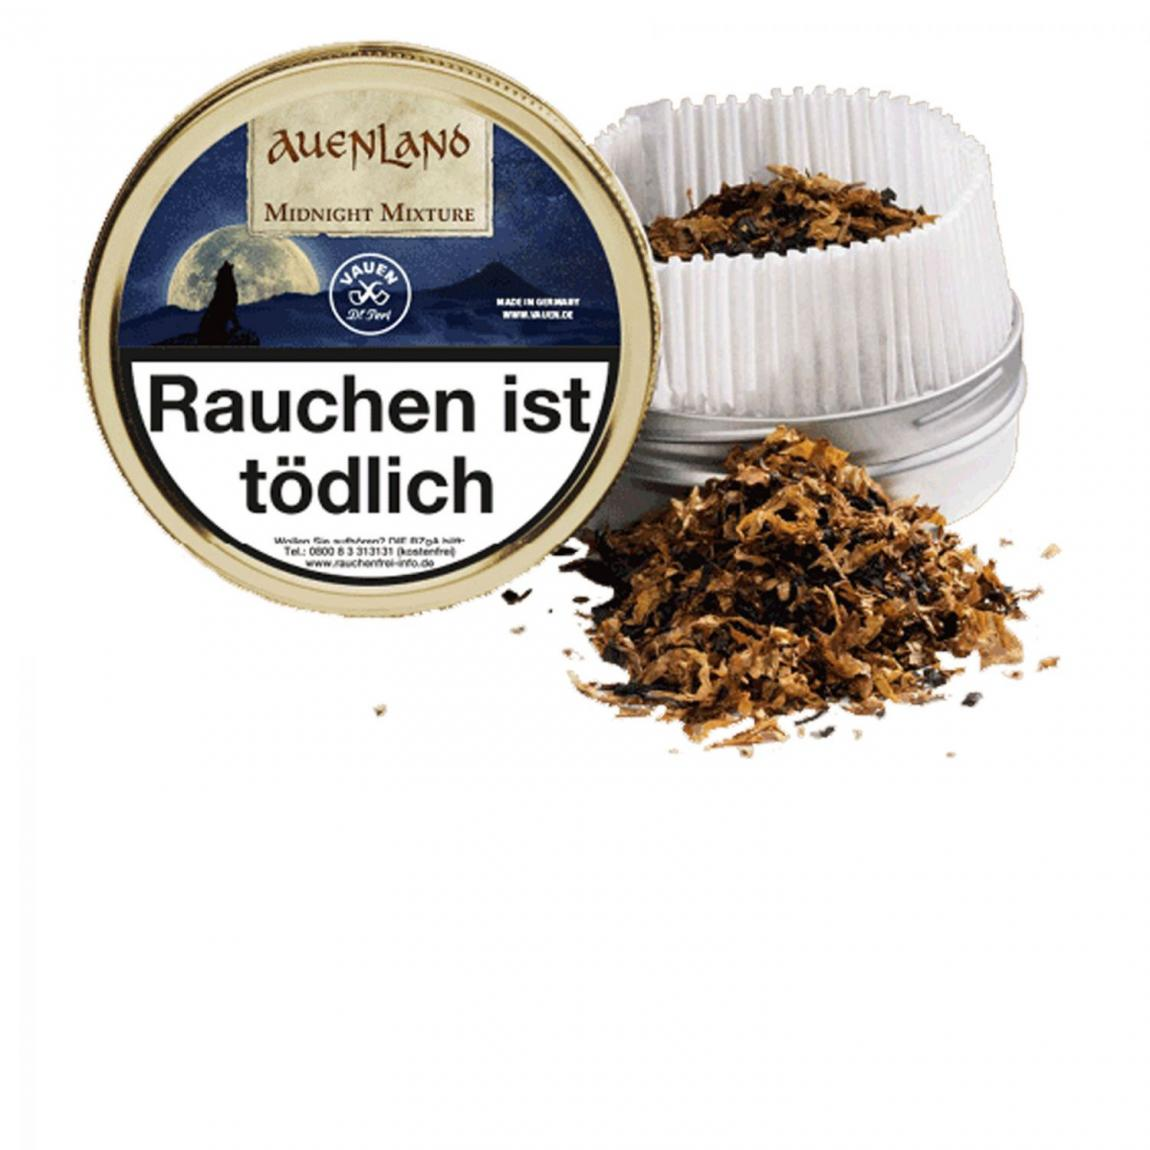 Vauen »Auenland« Midnight Mixture 50g Dose